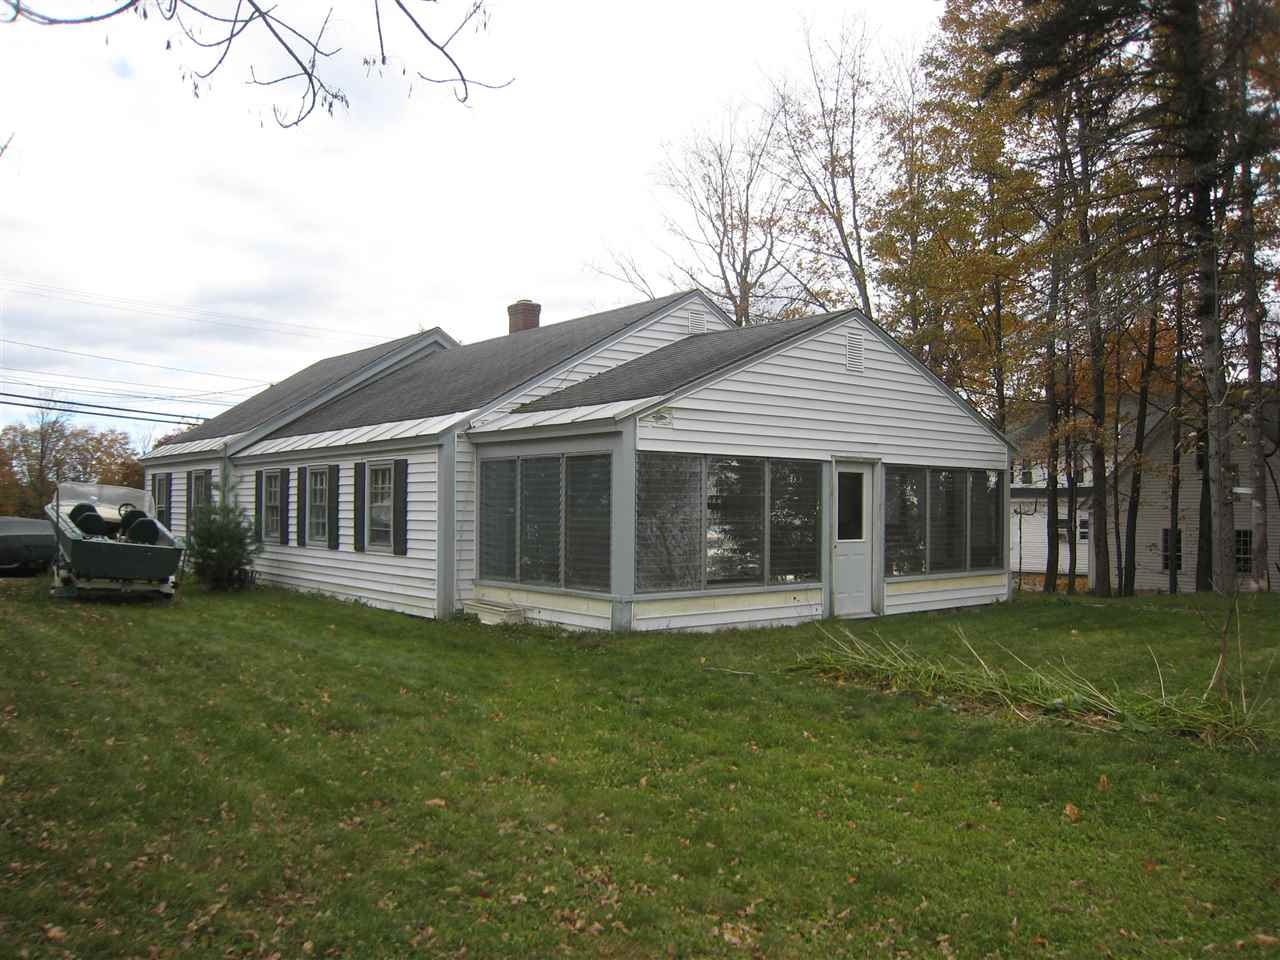 MLS 4724908: 10 Main, New London NH